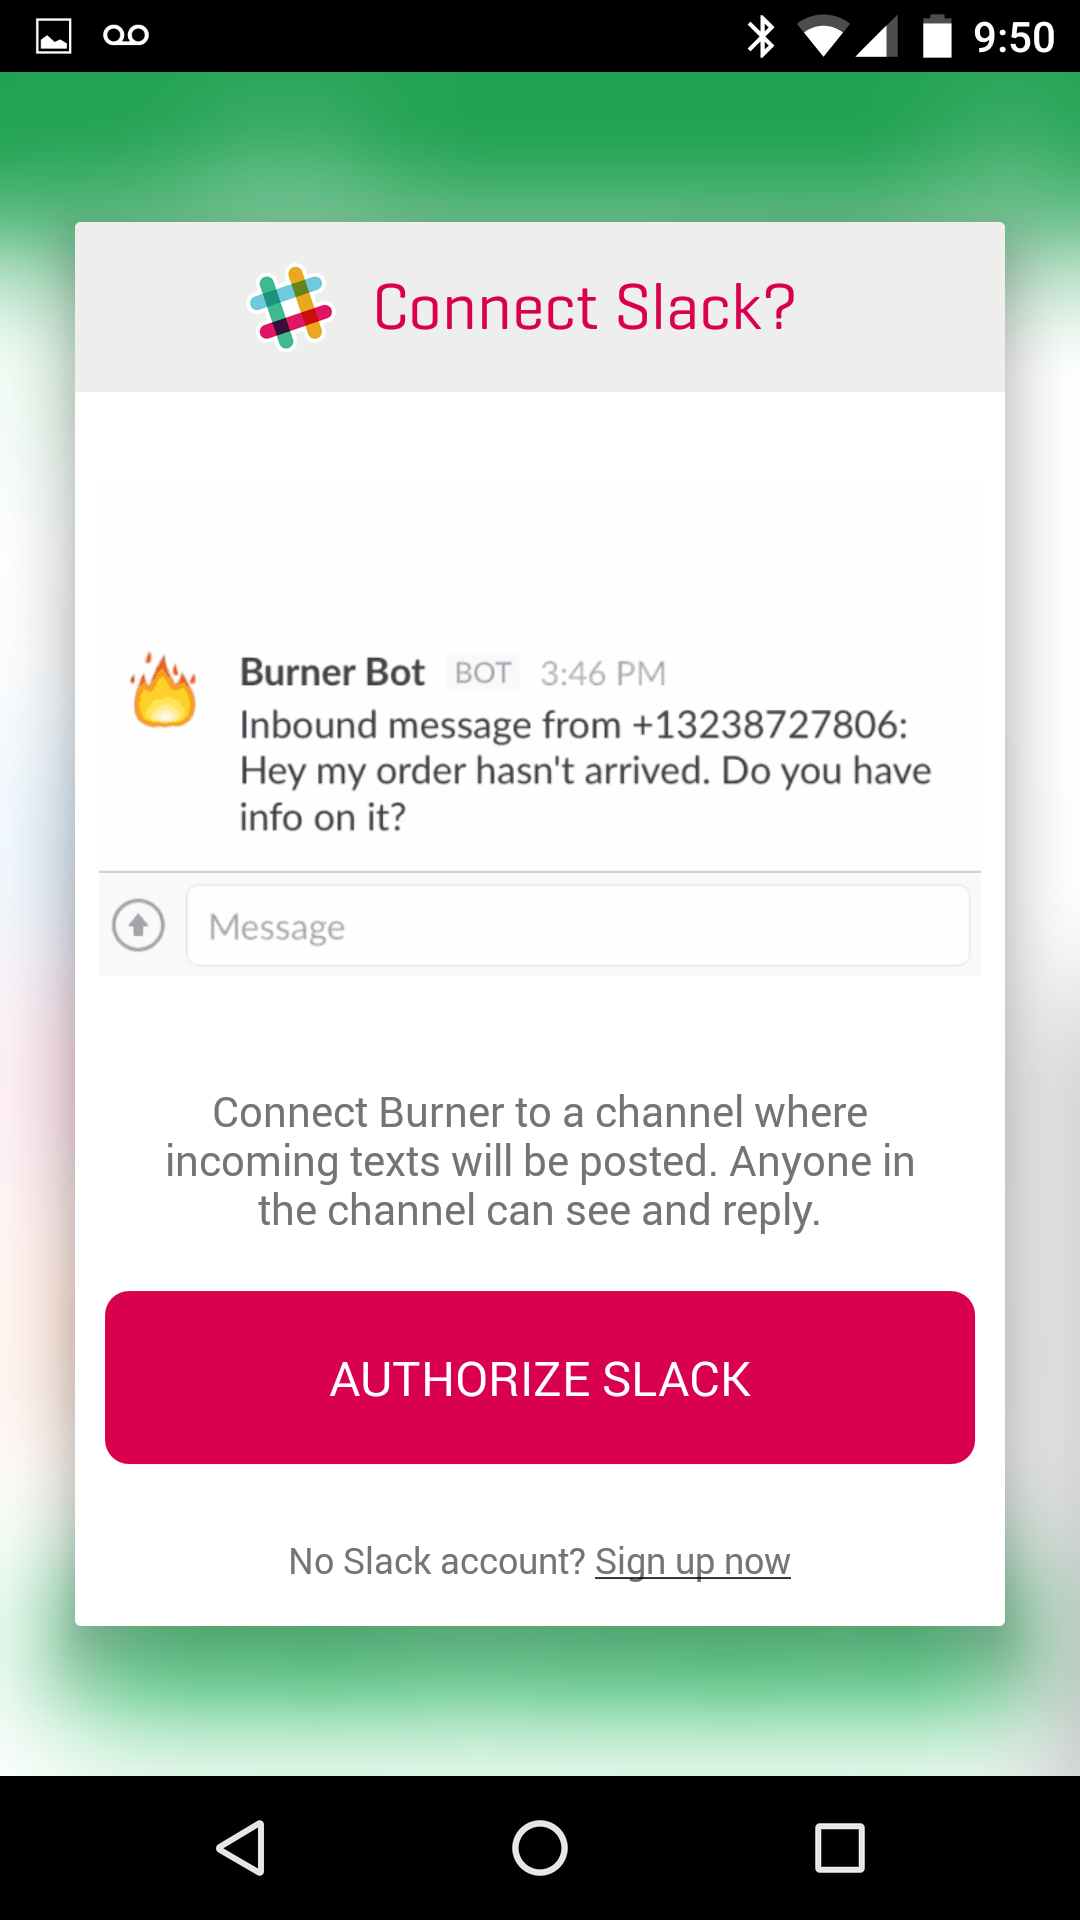 Burner_Connections_Android_Slack_1.png